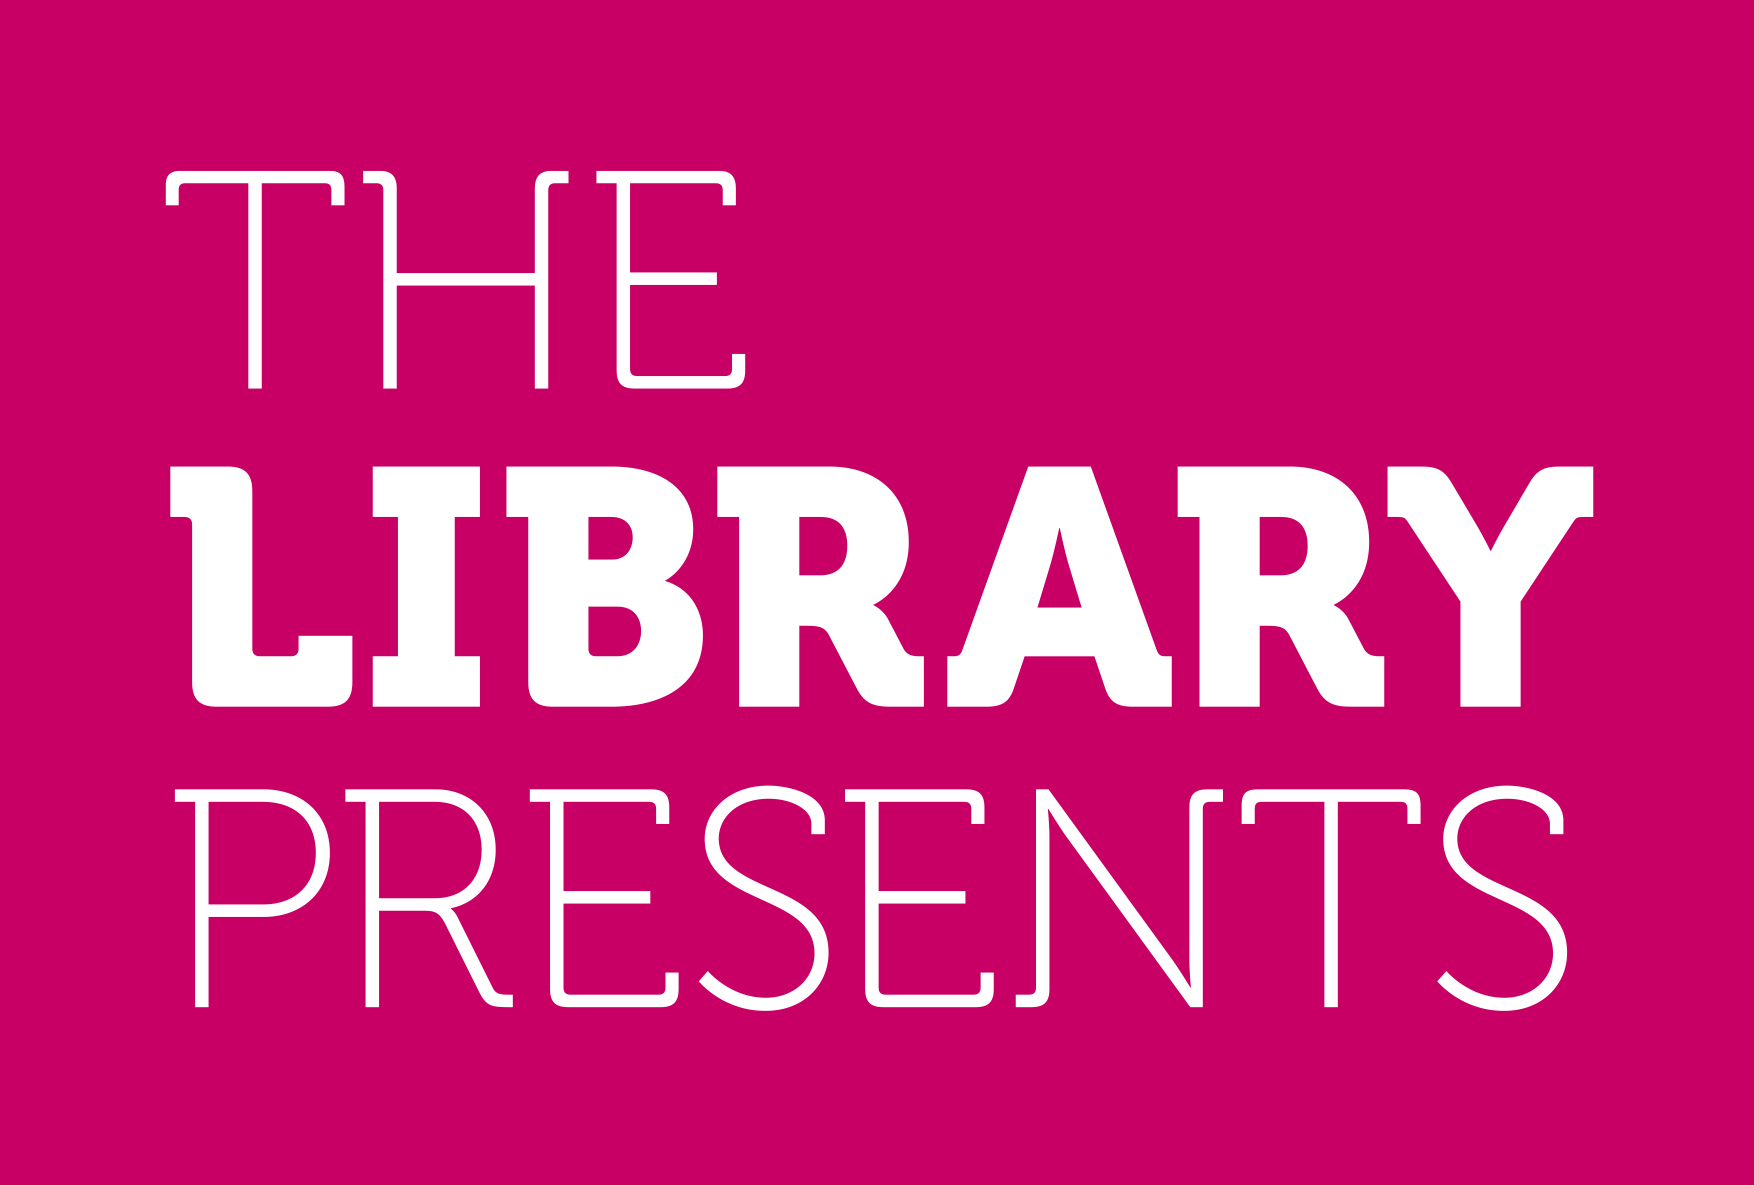 The Library Presents logo